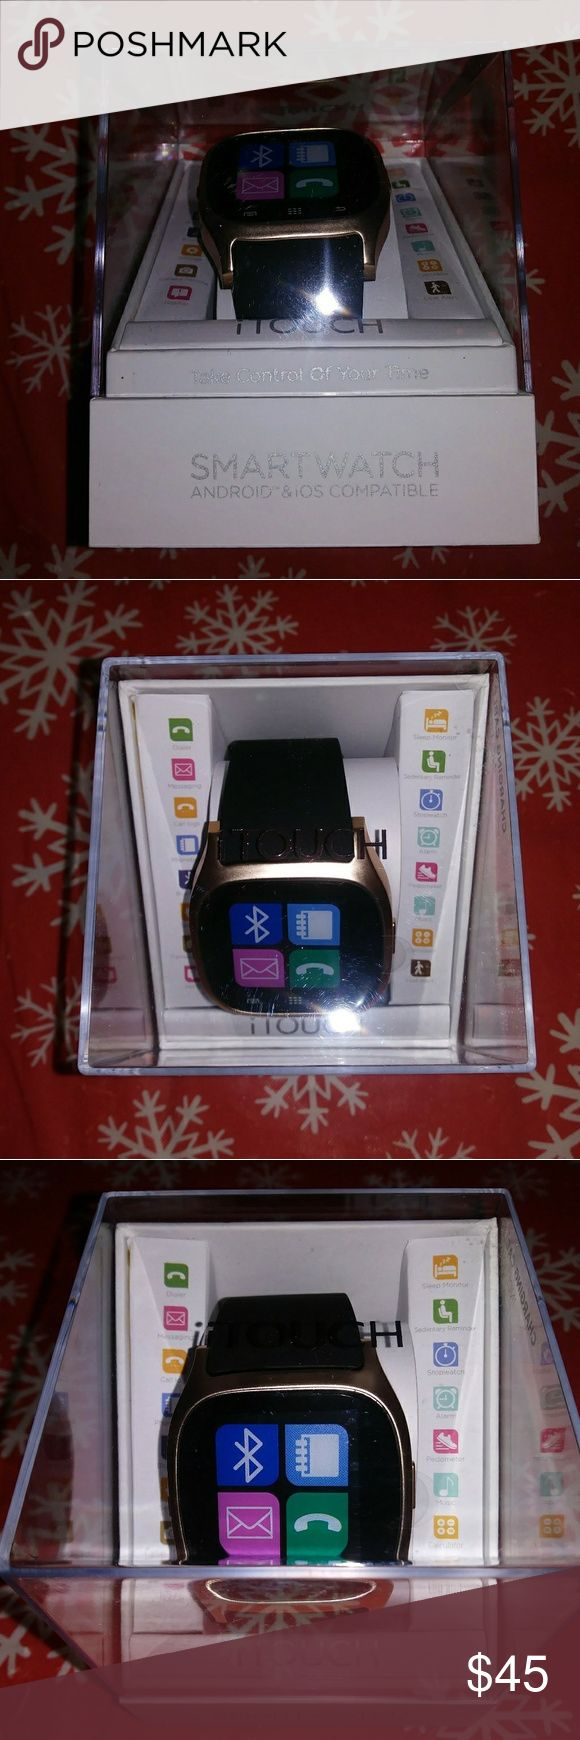 iTouch Smartwatch by American Exchange Brand new in box. Compatible with Android 4.4 and higher. Compatible with iPhones & iPads running iOS 7.2 and higher. Features dialer, messaging, call log, phonebook, Bluetooth, settings, camera remote, notifier, sleep monitor, sedentary reminder, stopwatch, alarm, pedometer, music, calculator, & lost alert. American Exchange Other